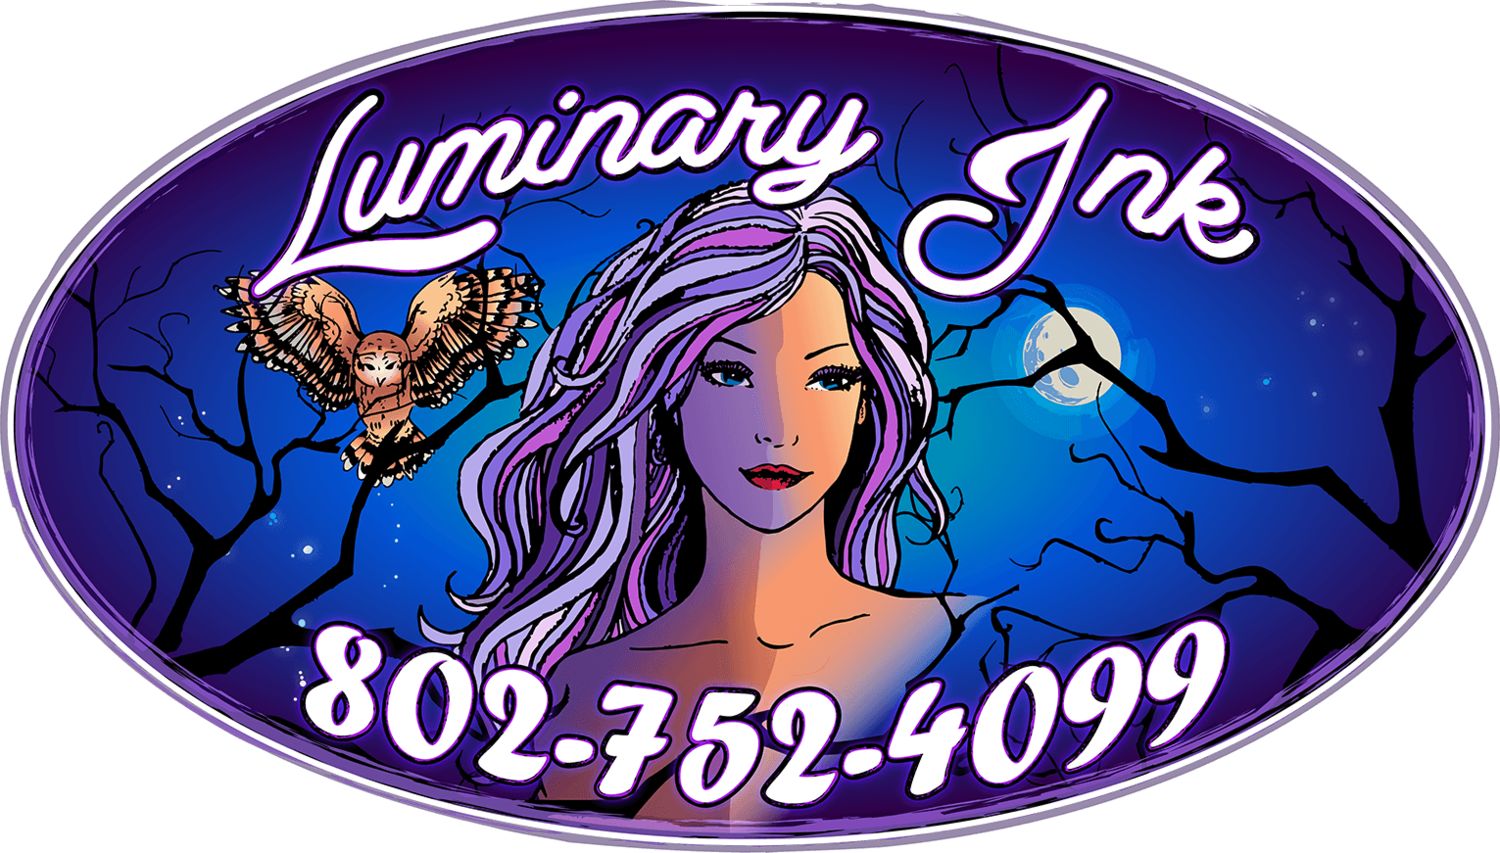 Luminary Ink- Tattoos, Piercings, Permanent Cosmetics